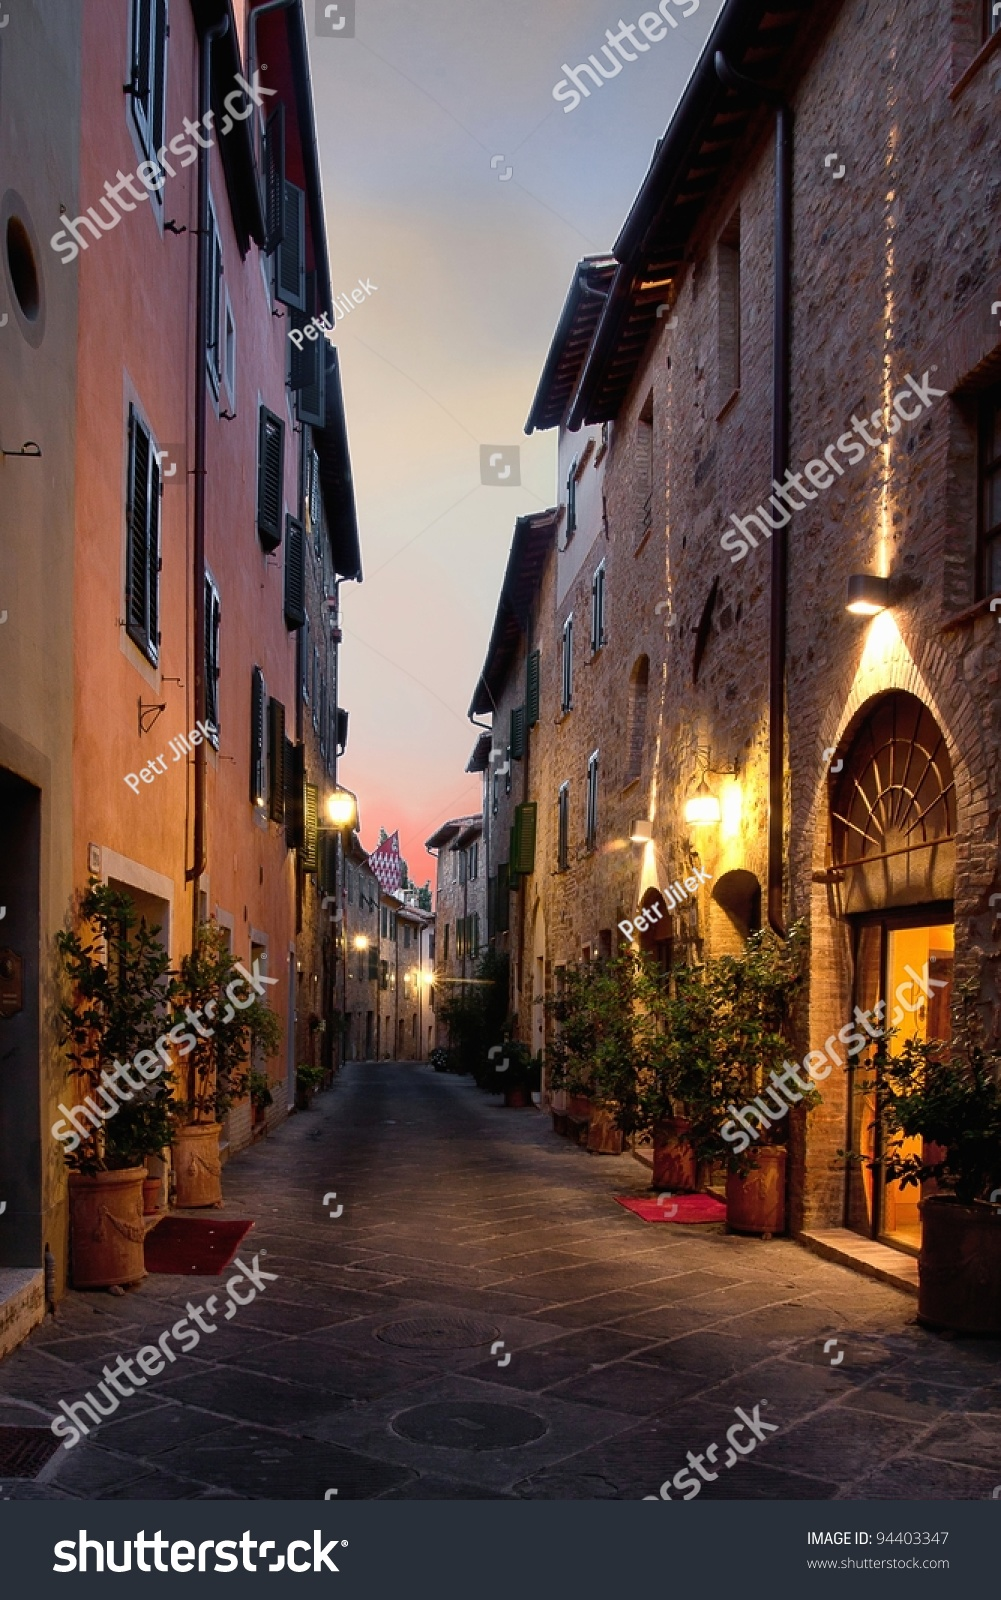 San Quirico d'Orcia Italy  city pictures gallery : San Quirico D'Orcia An Ancient Town In The Italian Tuscany Stock Photo ...